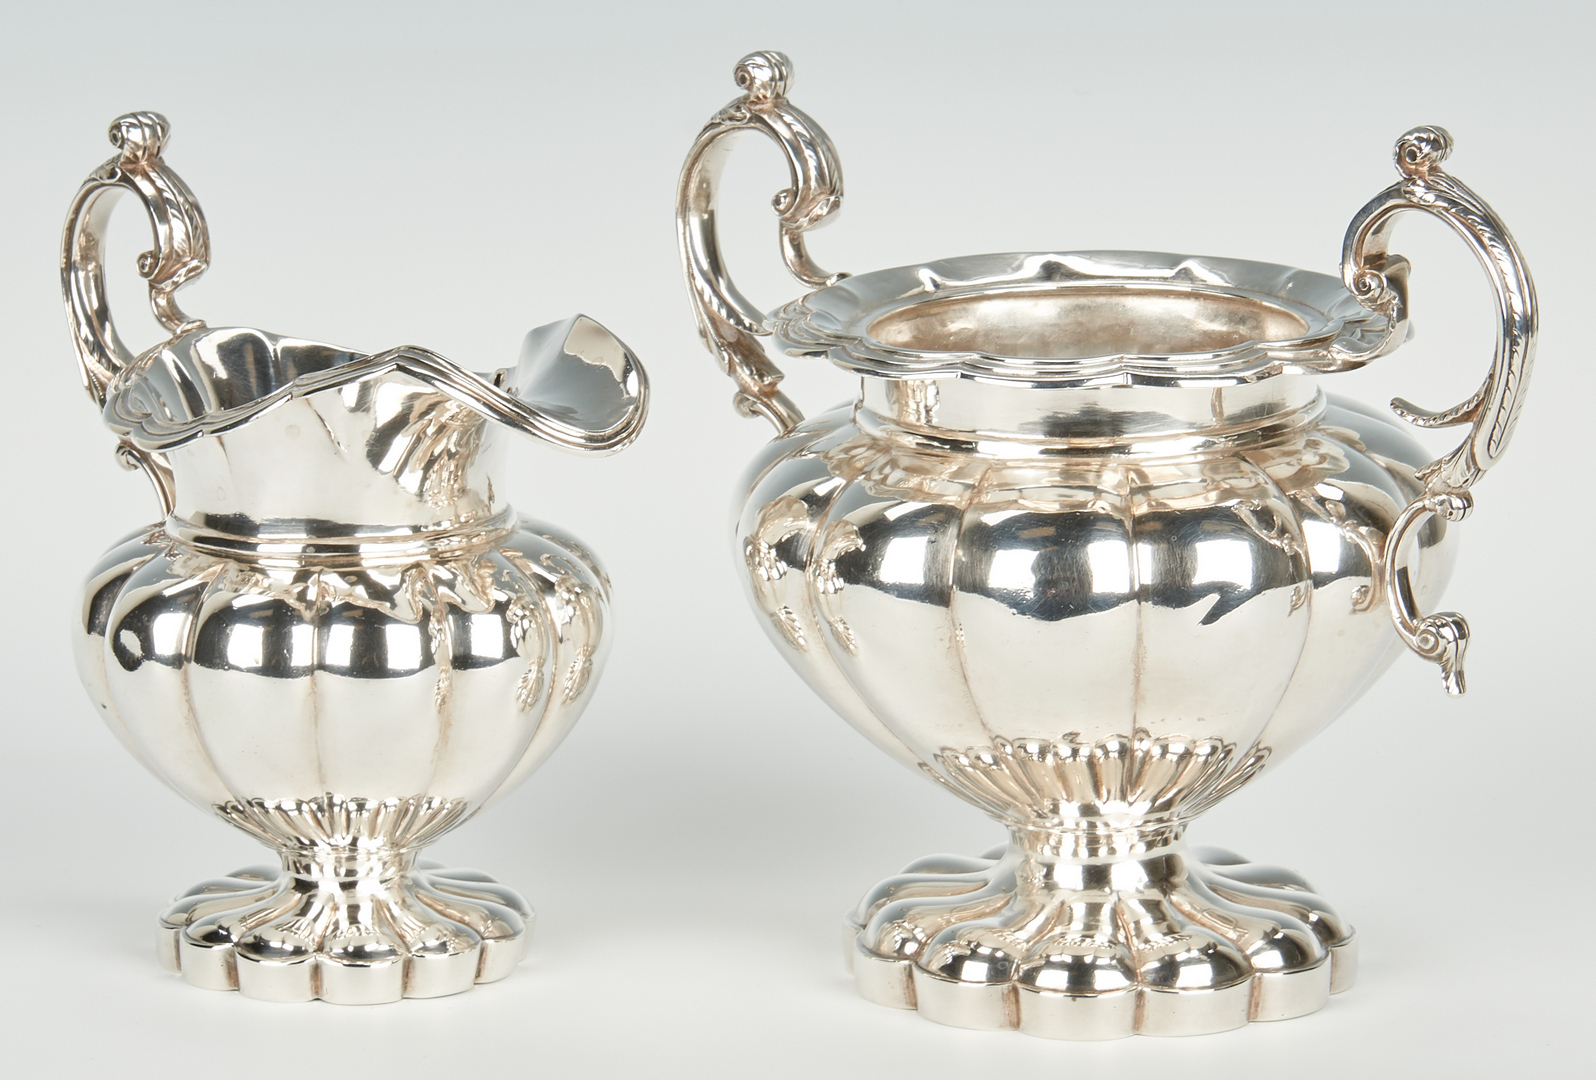 Lot 73: Brower Bros. New Orleans Silver Sugar & Creamer